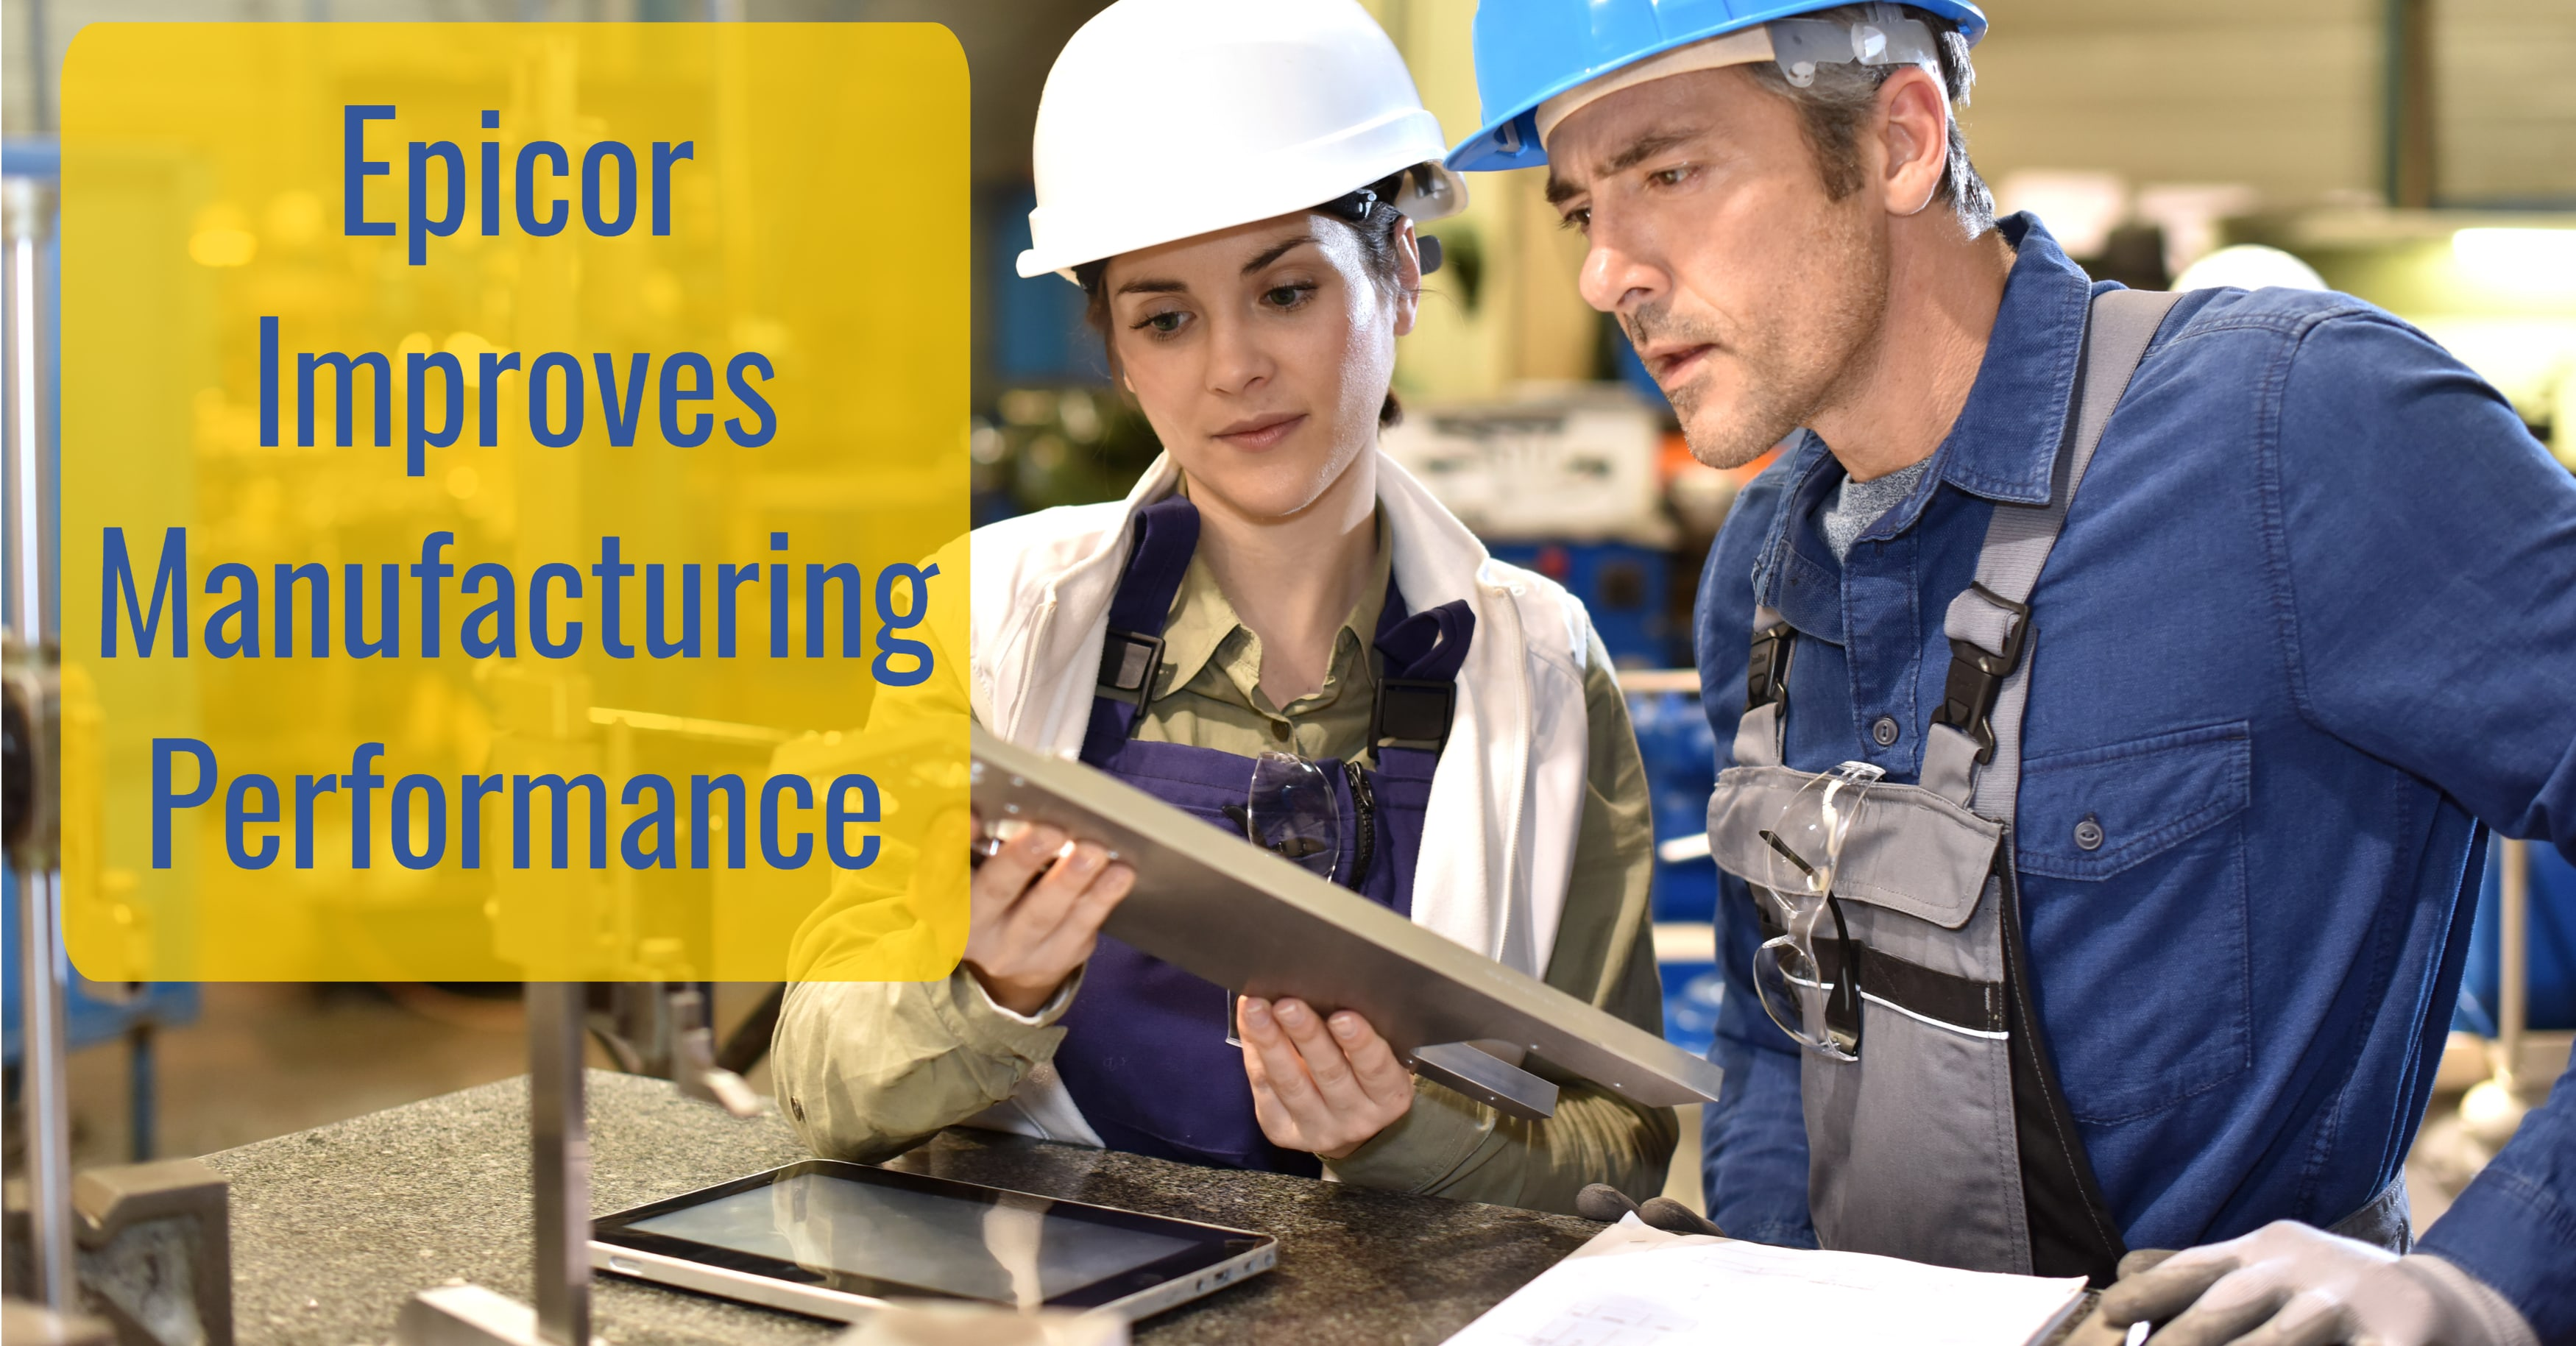 How Does Epicor ERP Improve Manufacturing Performance?